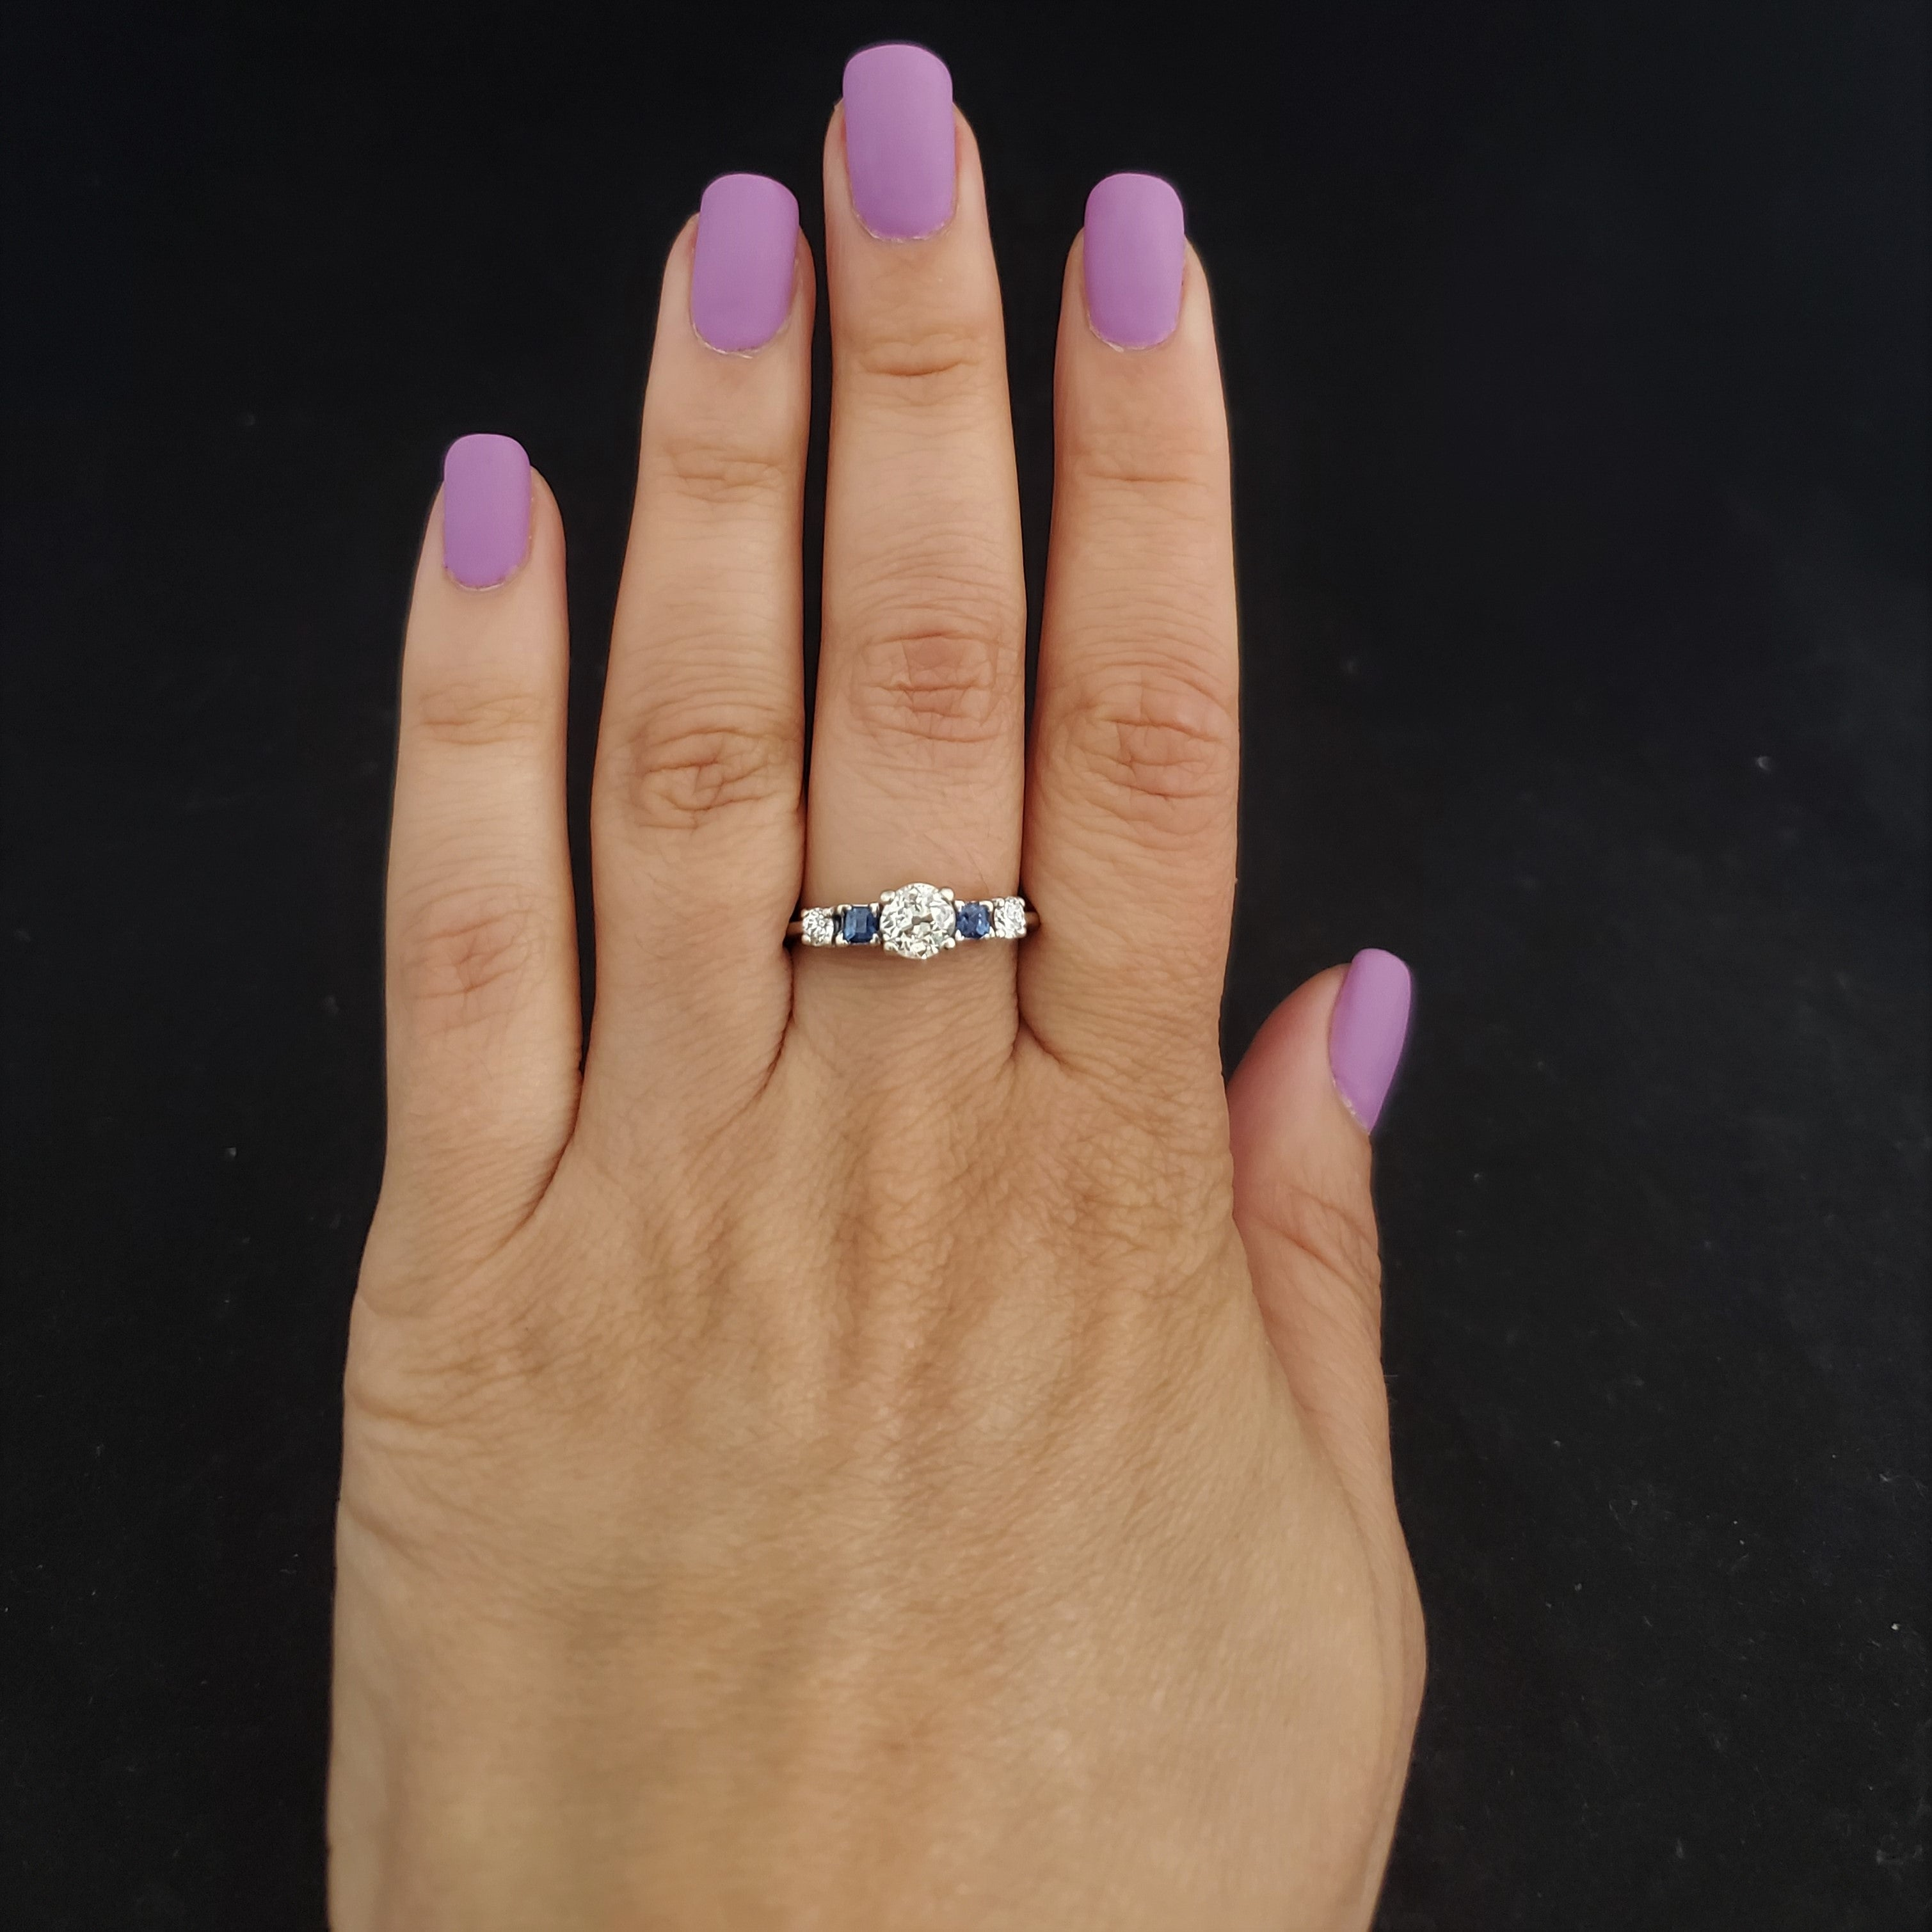 Engagement Rings Newcastle: Estate Jewelry